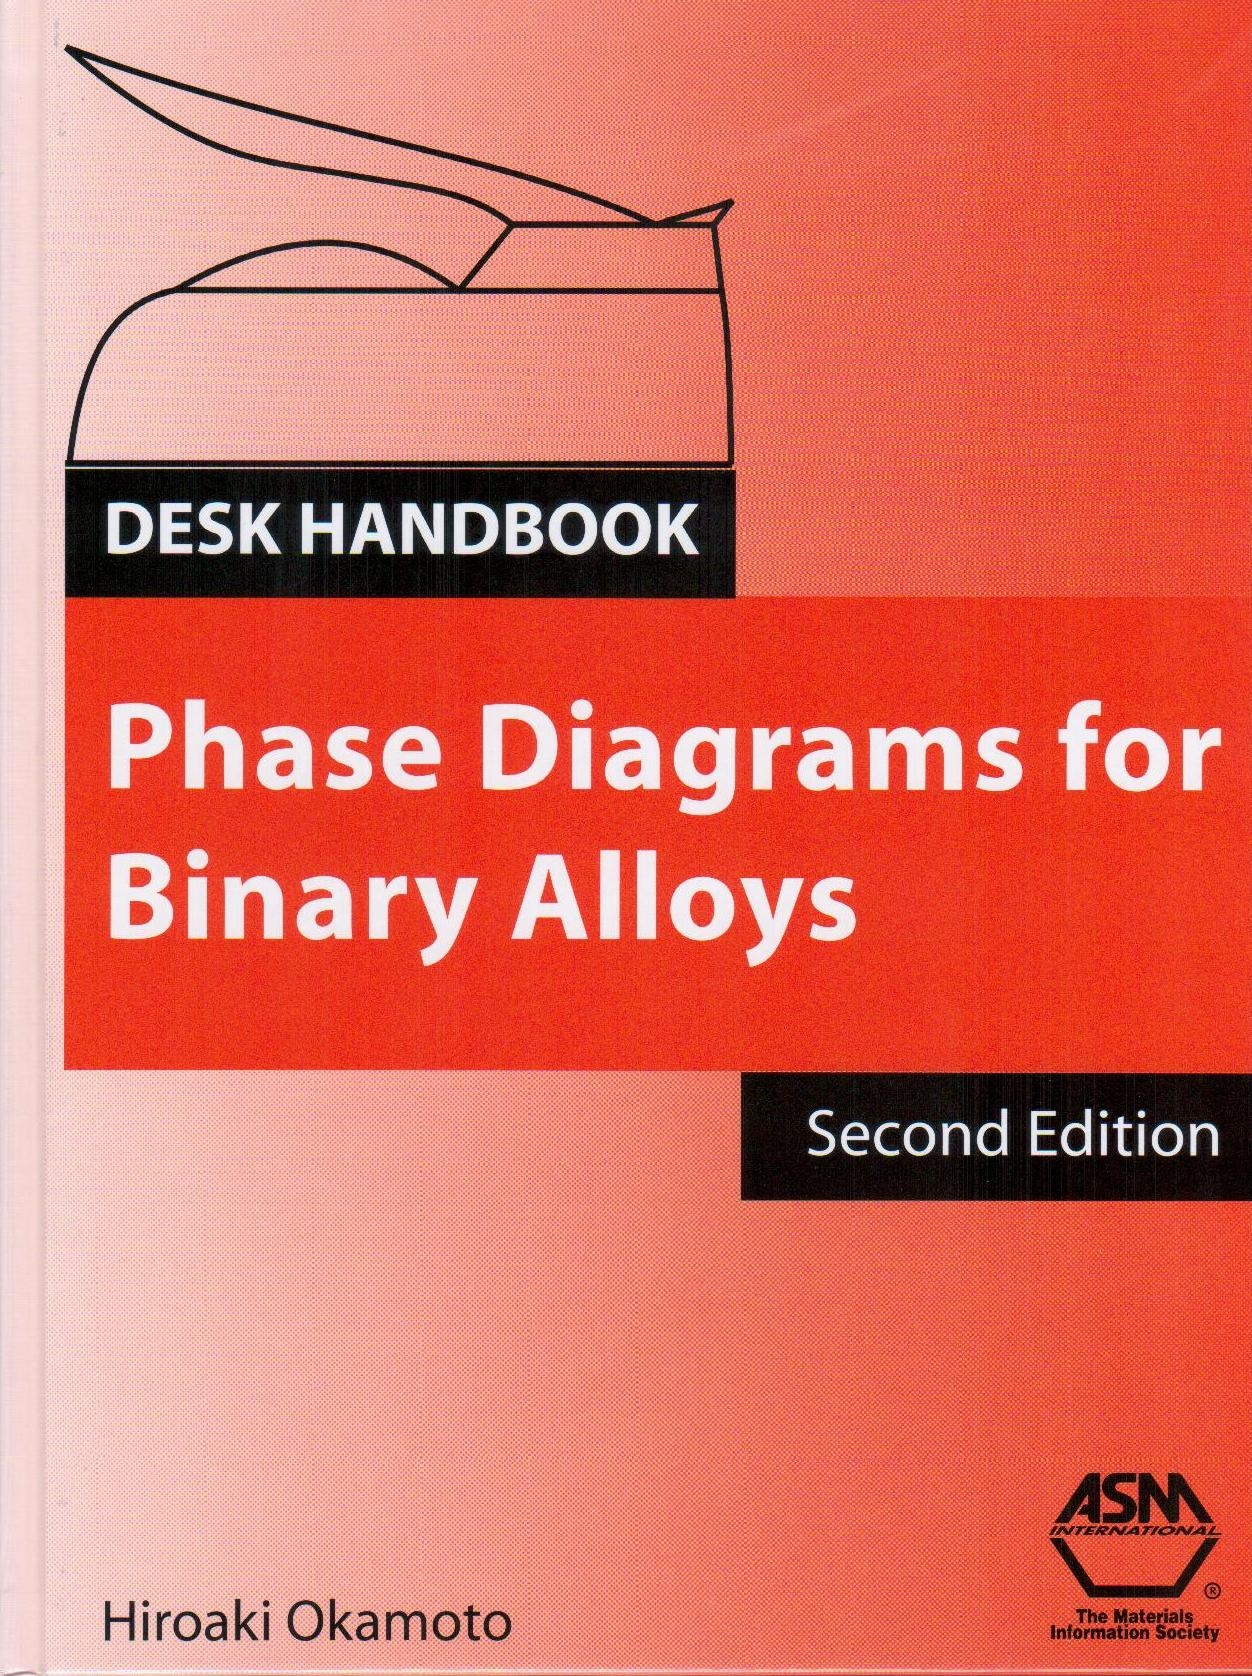 asm phase diagram suzuki ltz 400 carburetor desk handbook diagrams for binary alloys 2nd edition title author hiroaki okamoto isbn 1615030468 9781615030460 format hard cover pages 900